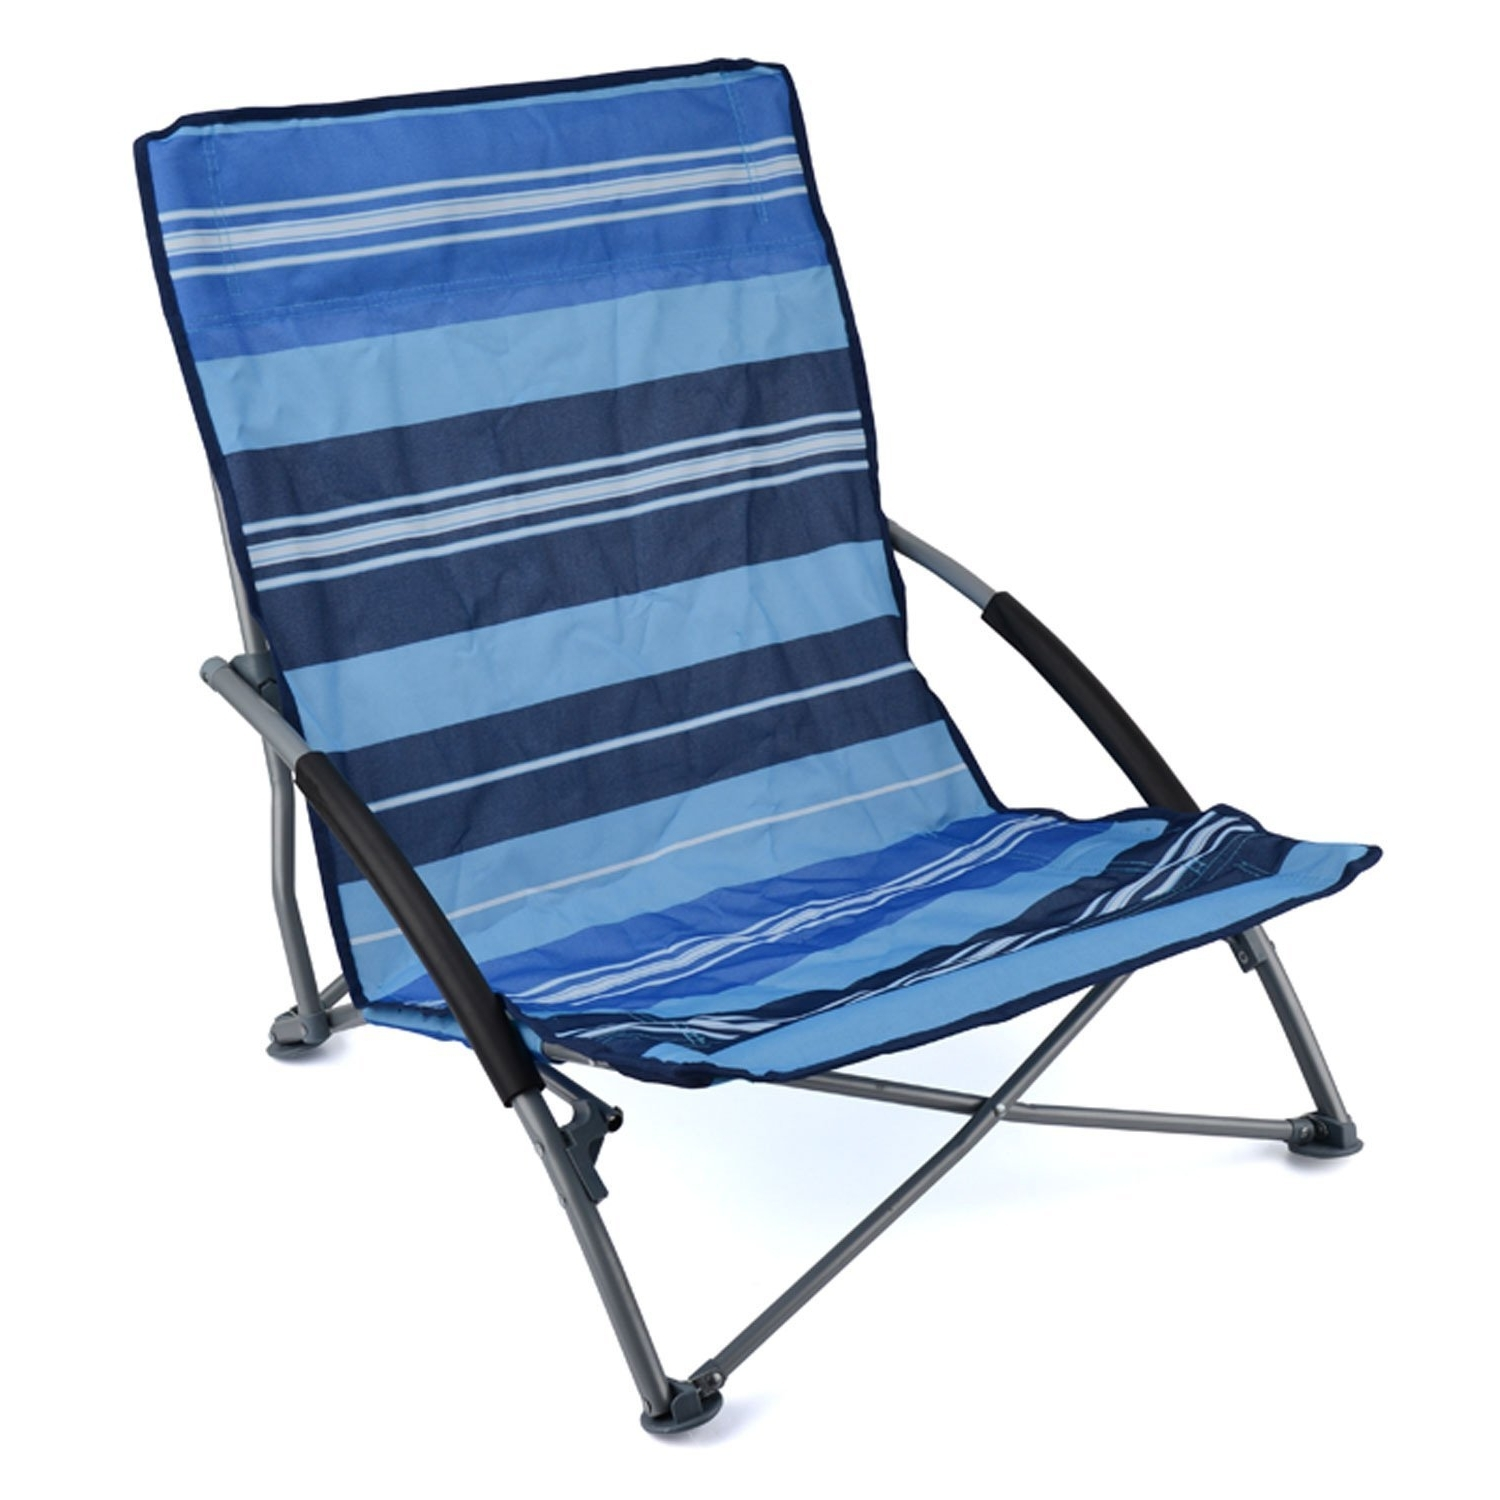 Best And Newest Convertible Chair : With Footrest Folding Bag Chairs Padded Regarding Lightweight Chaise Lounge Chairs (View 3 of 15)